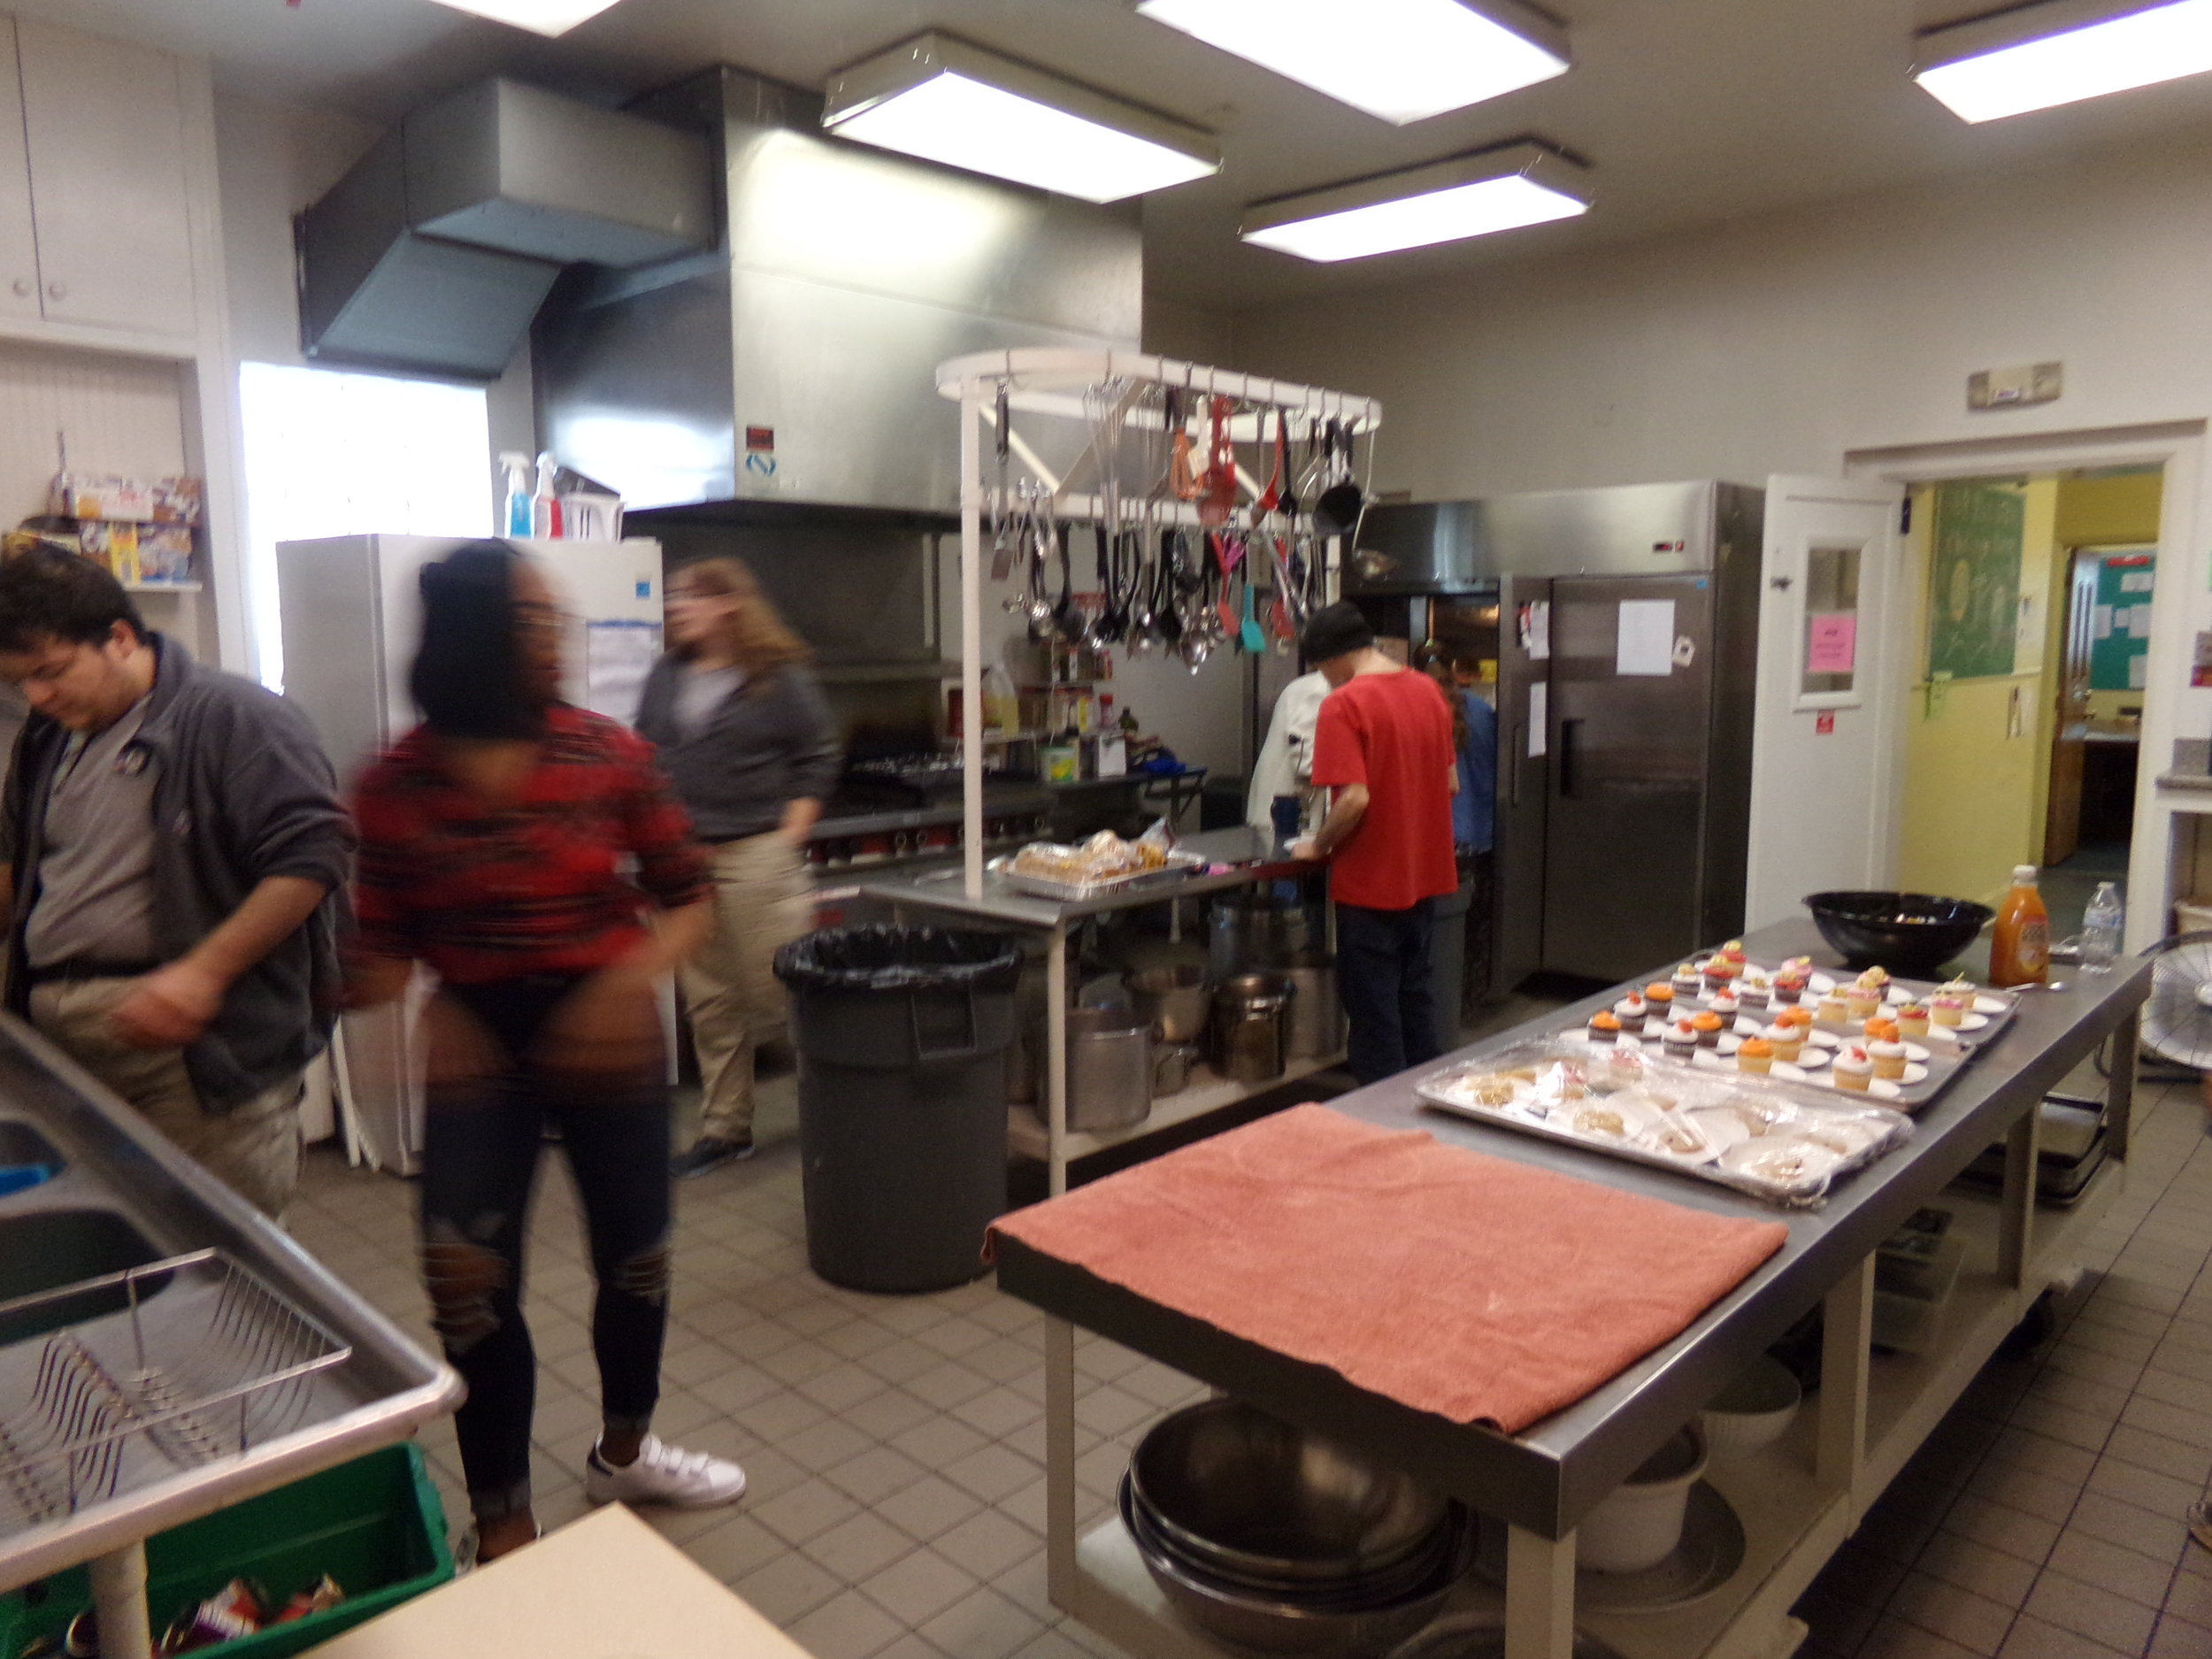 Community members, VISTA and NCCC volunteers, and church staff prepare for community lunch, held Monday-Thursday, noon-12:30pm.